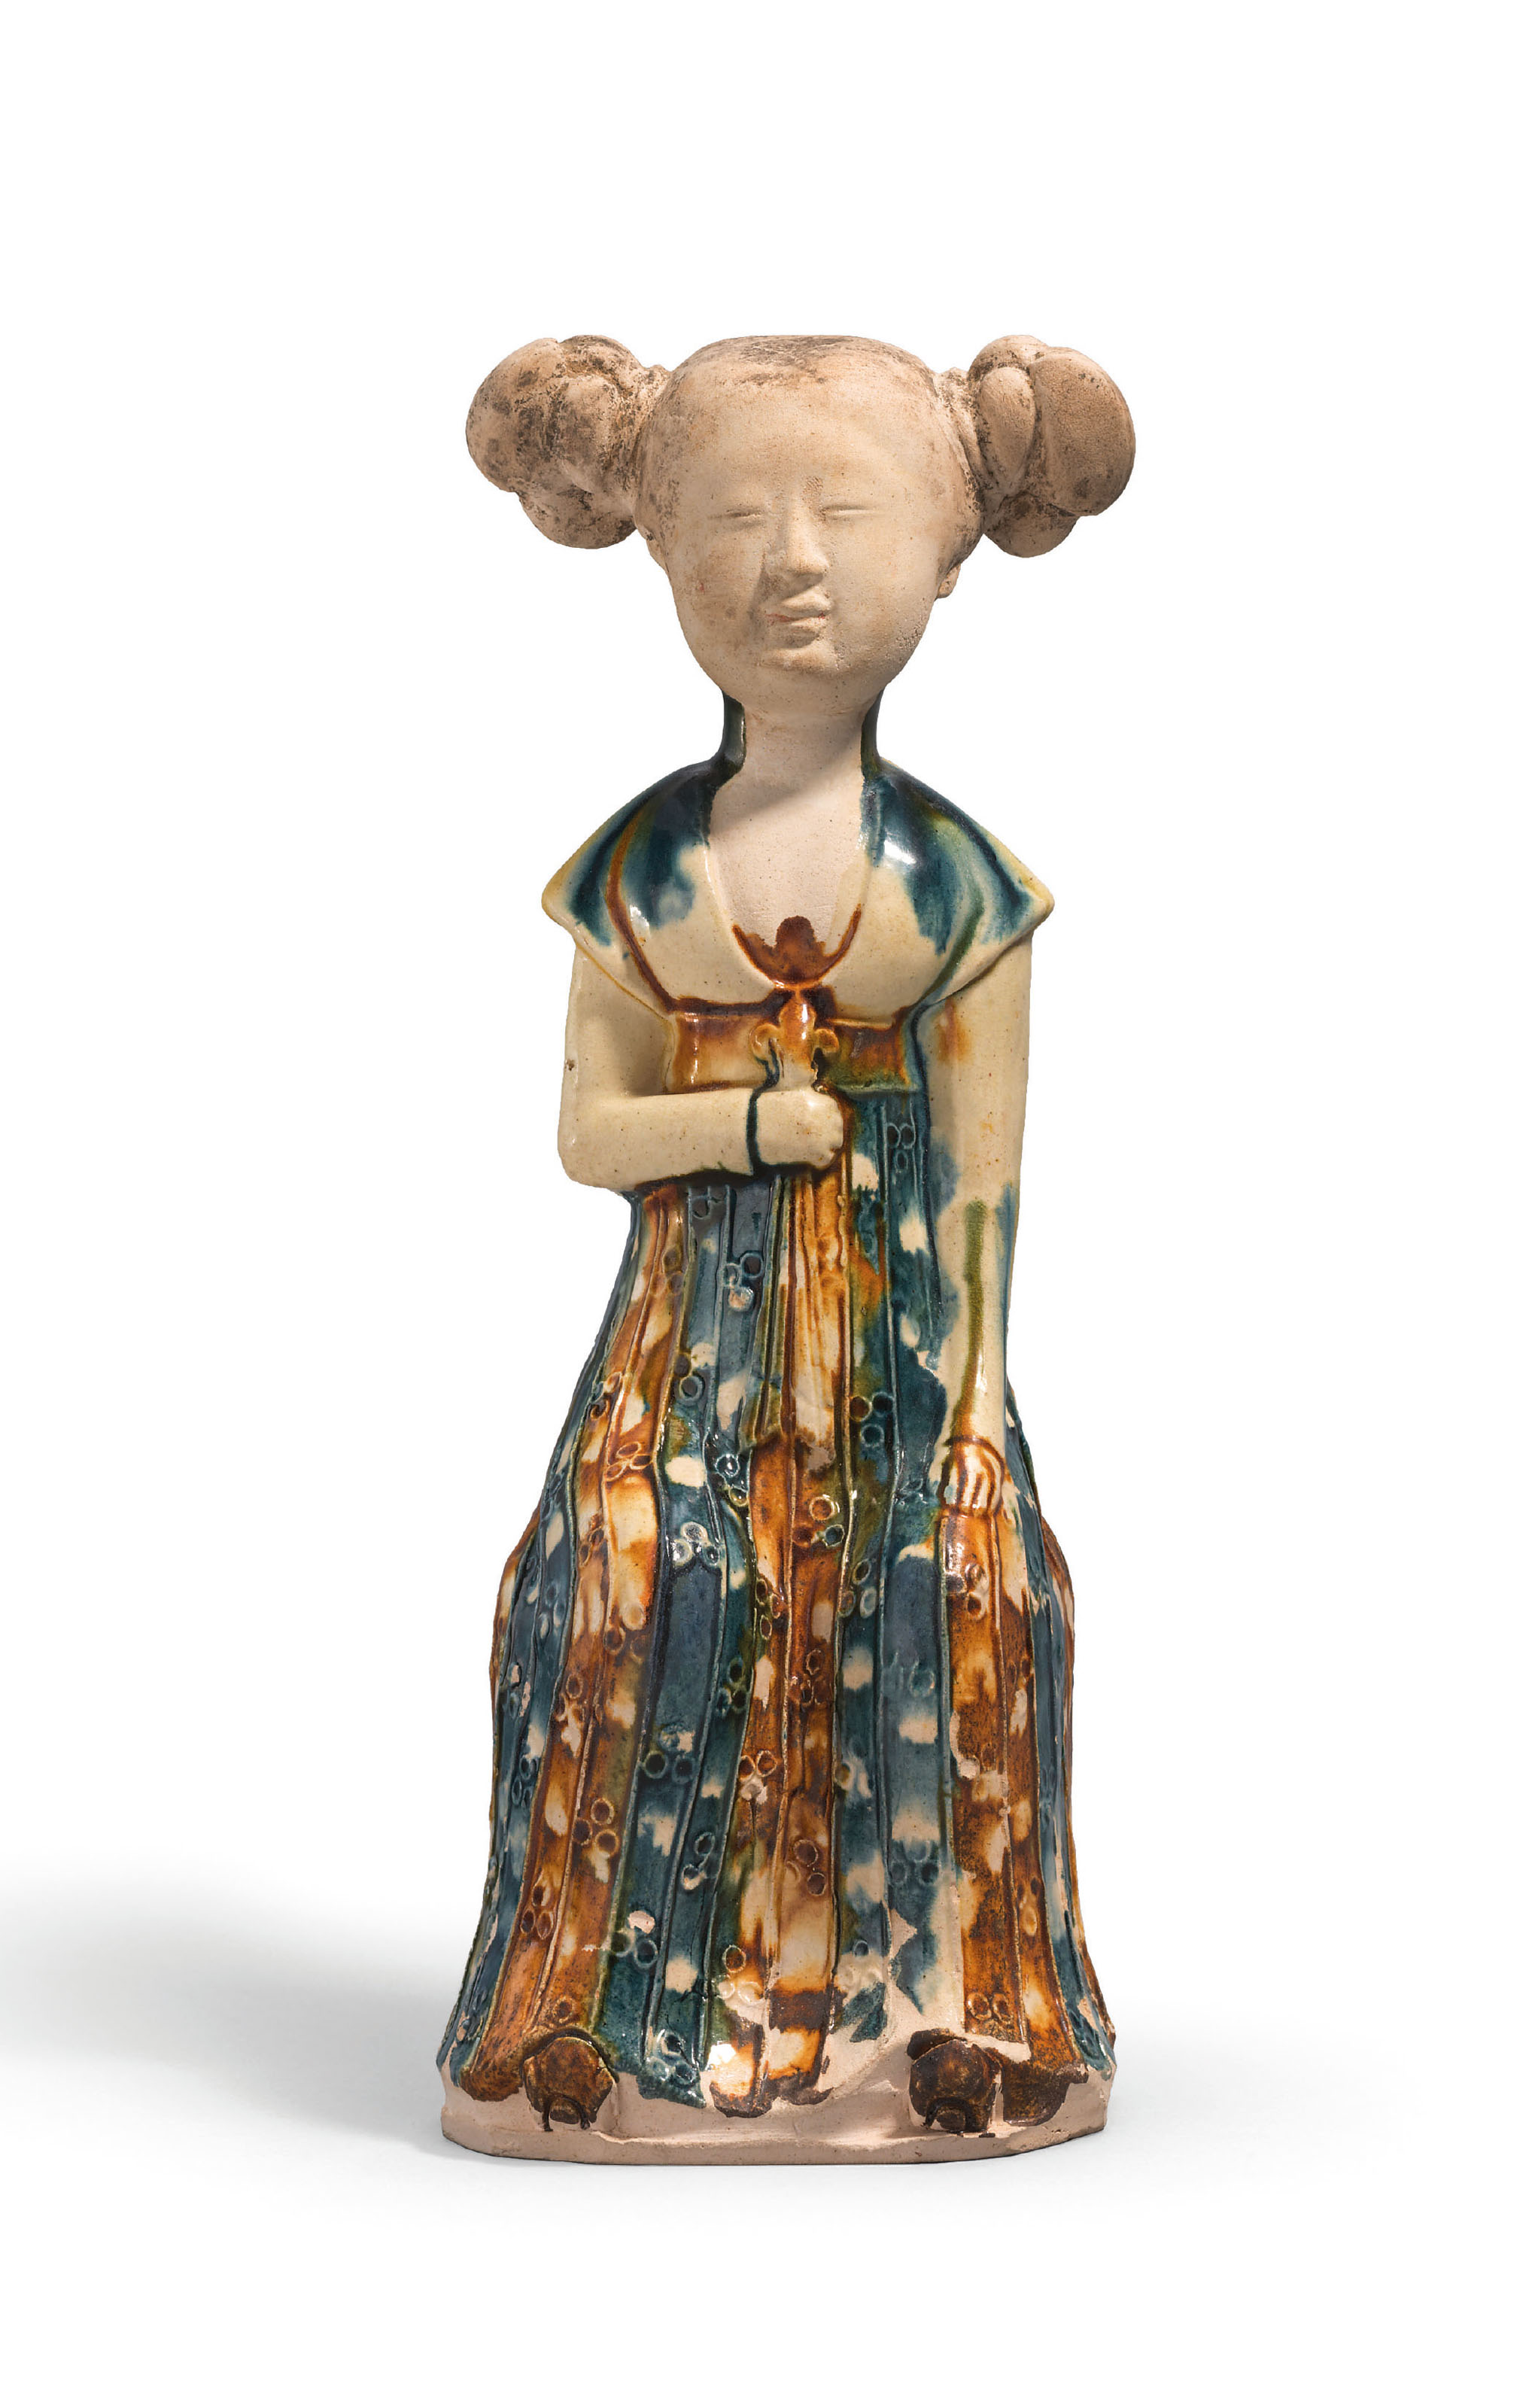 A VERY RARE INSCRIBED BLUE AND AMBER-GLAZED POTTERY FIGURE OF A SEATED LADY